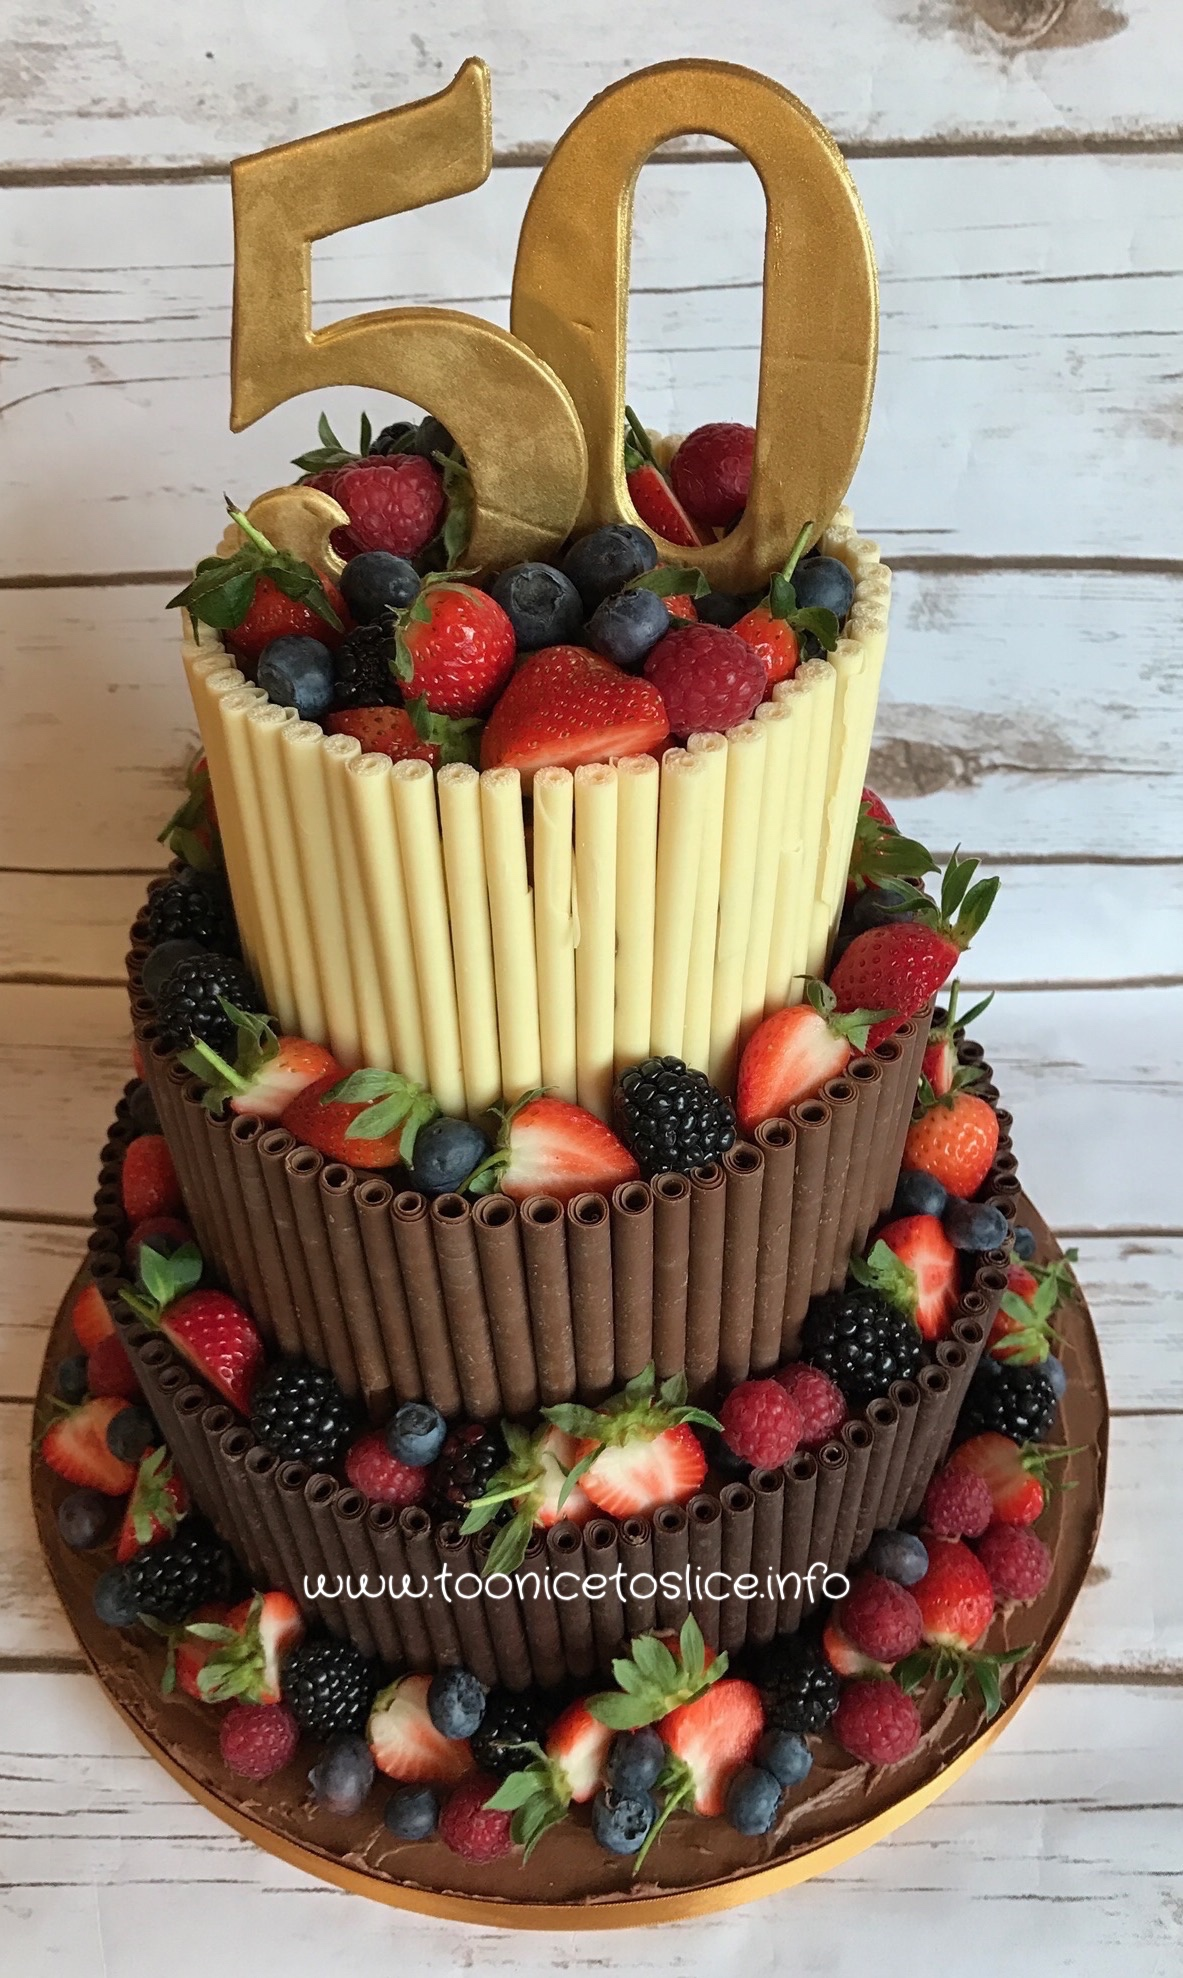 3 Tiers Chocolate Cigar Cake